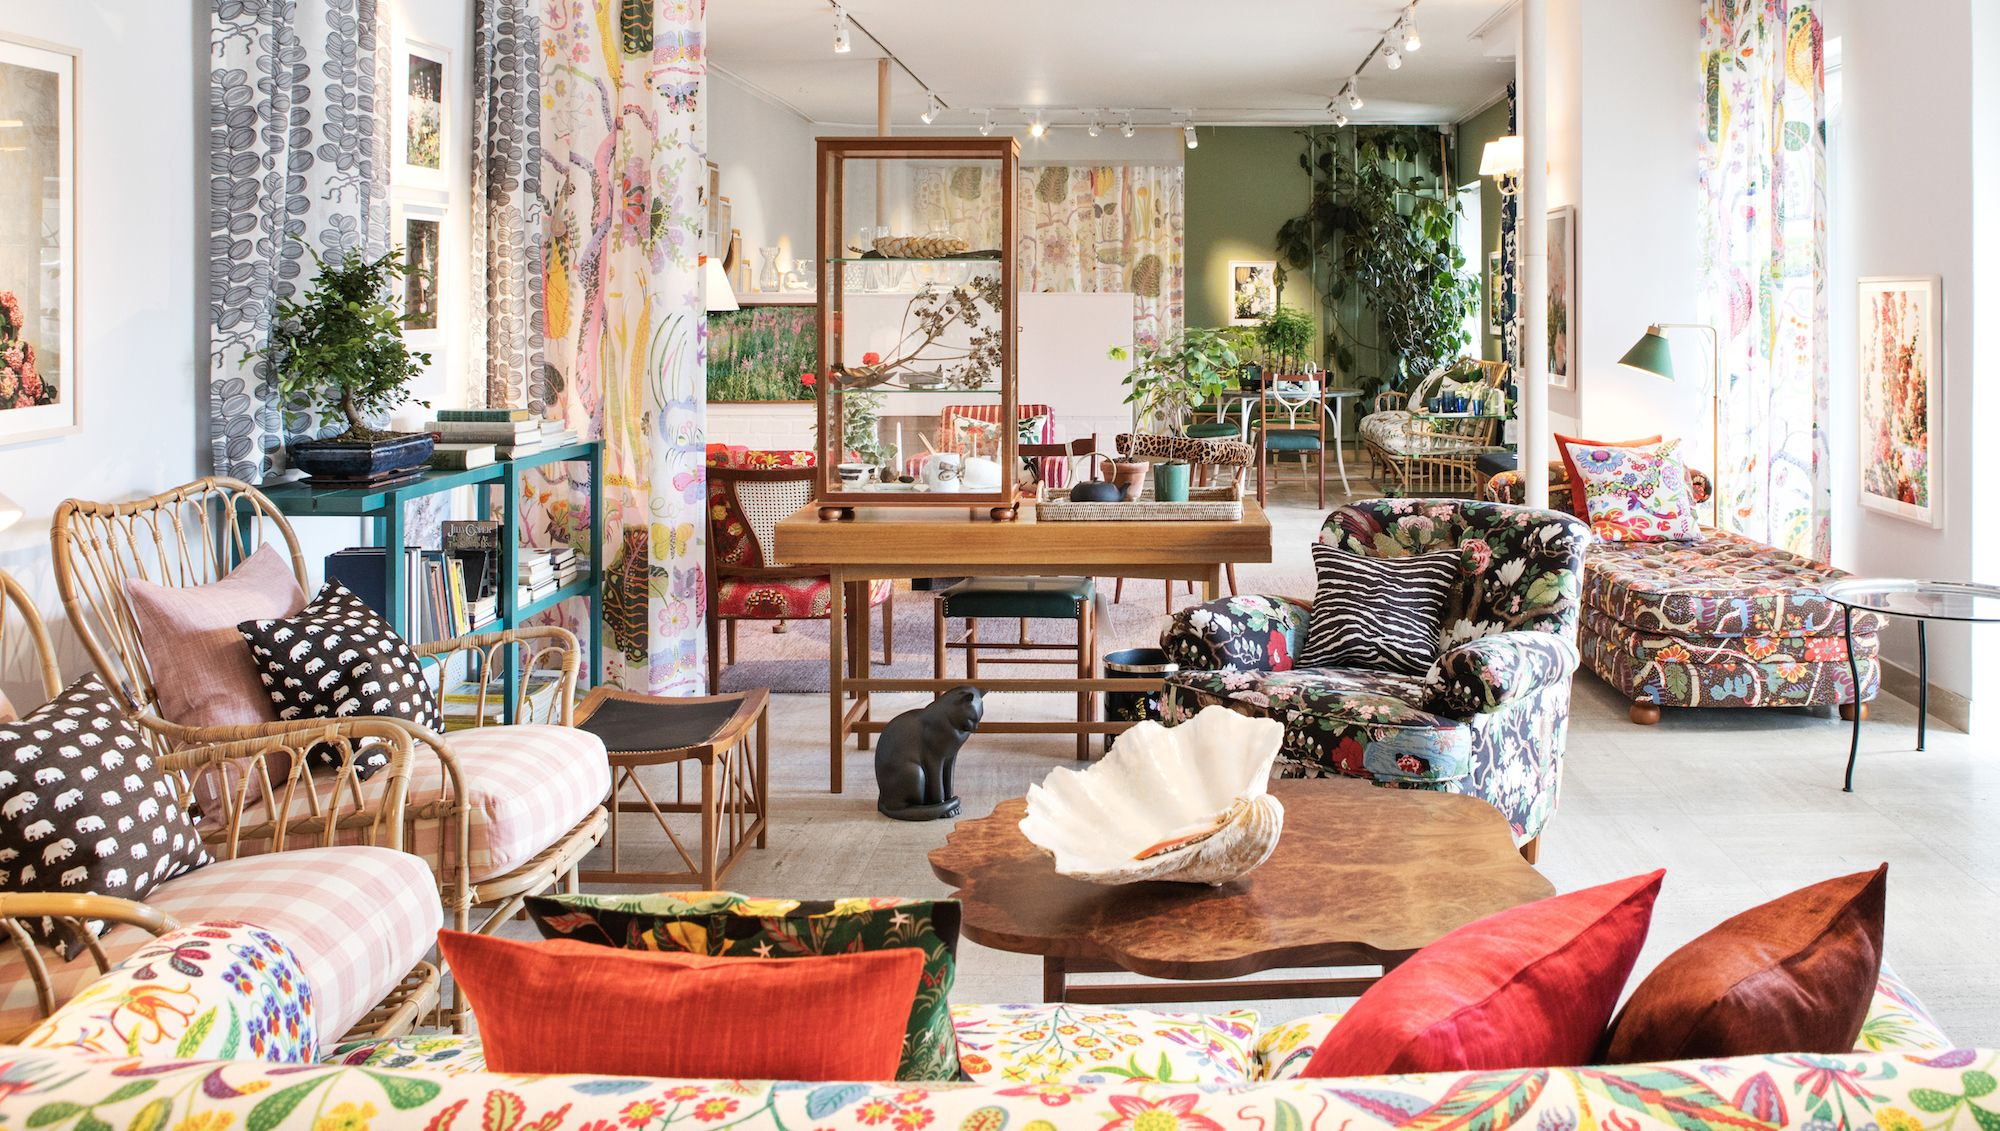 The Ultimate Guide to Stockholm's Best Design Stores